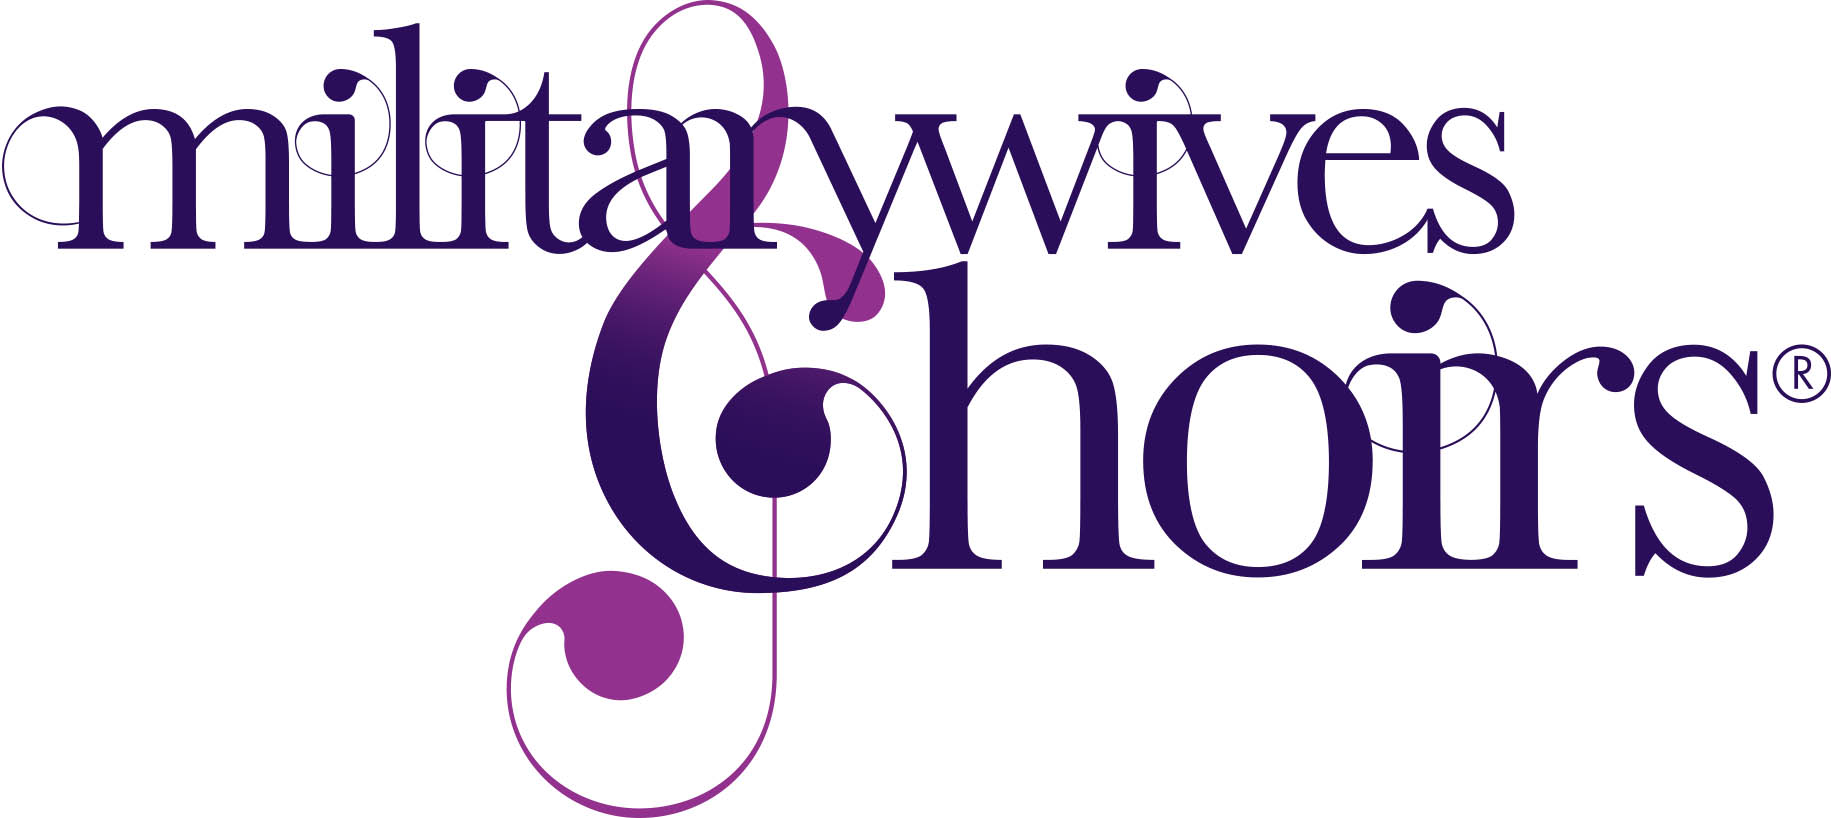 1831x818 Military Wives Choirs We Bring Women In The Military Community